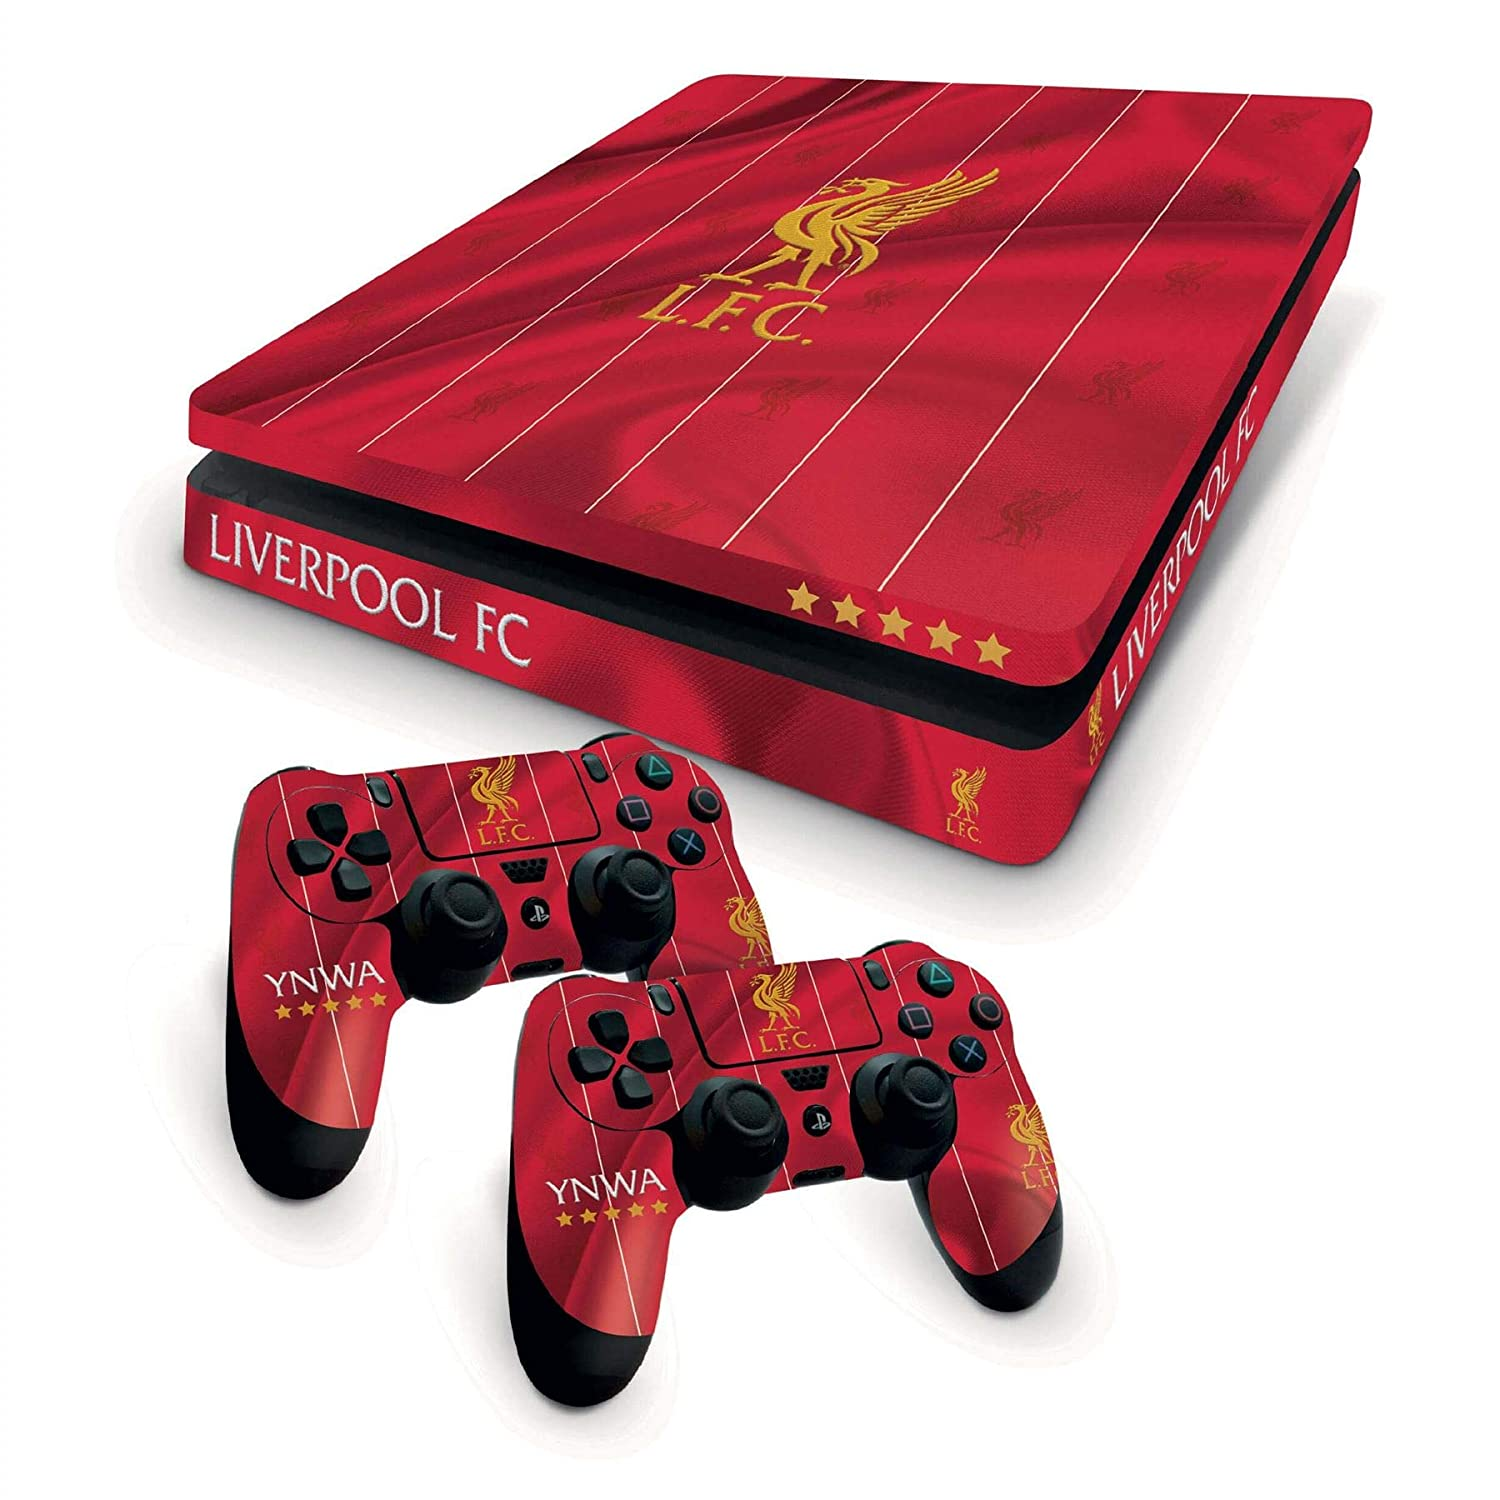 Professional Sale Liverpool F.c Xbox One Skin Bundle Reputation First Faceplates, Decals & Stickers